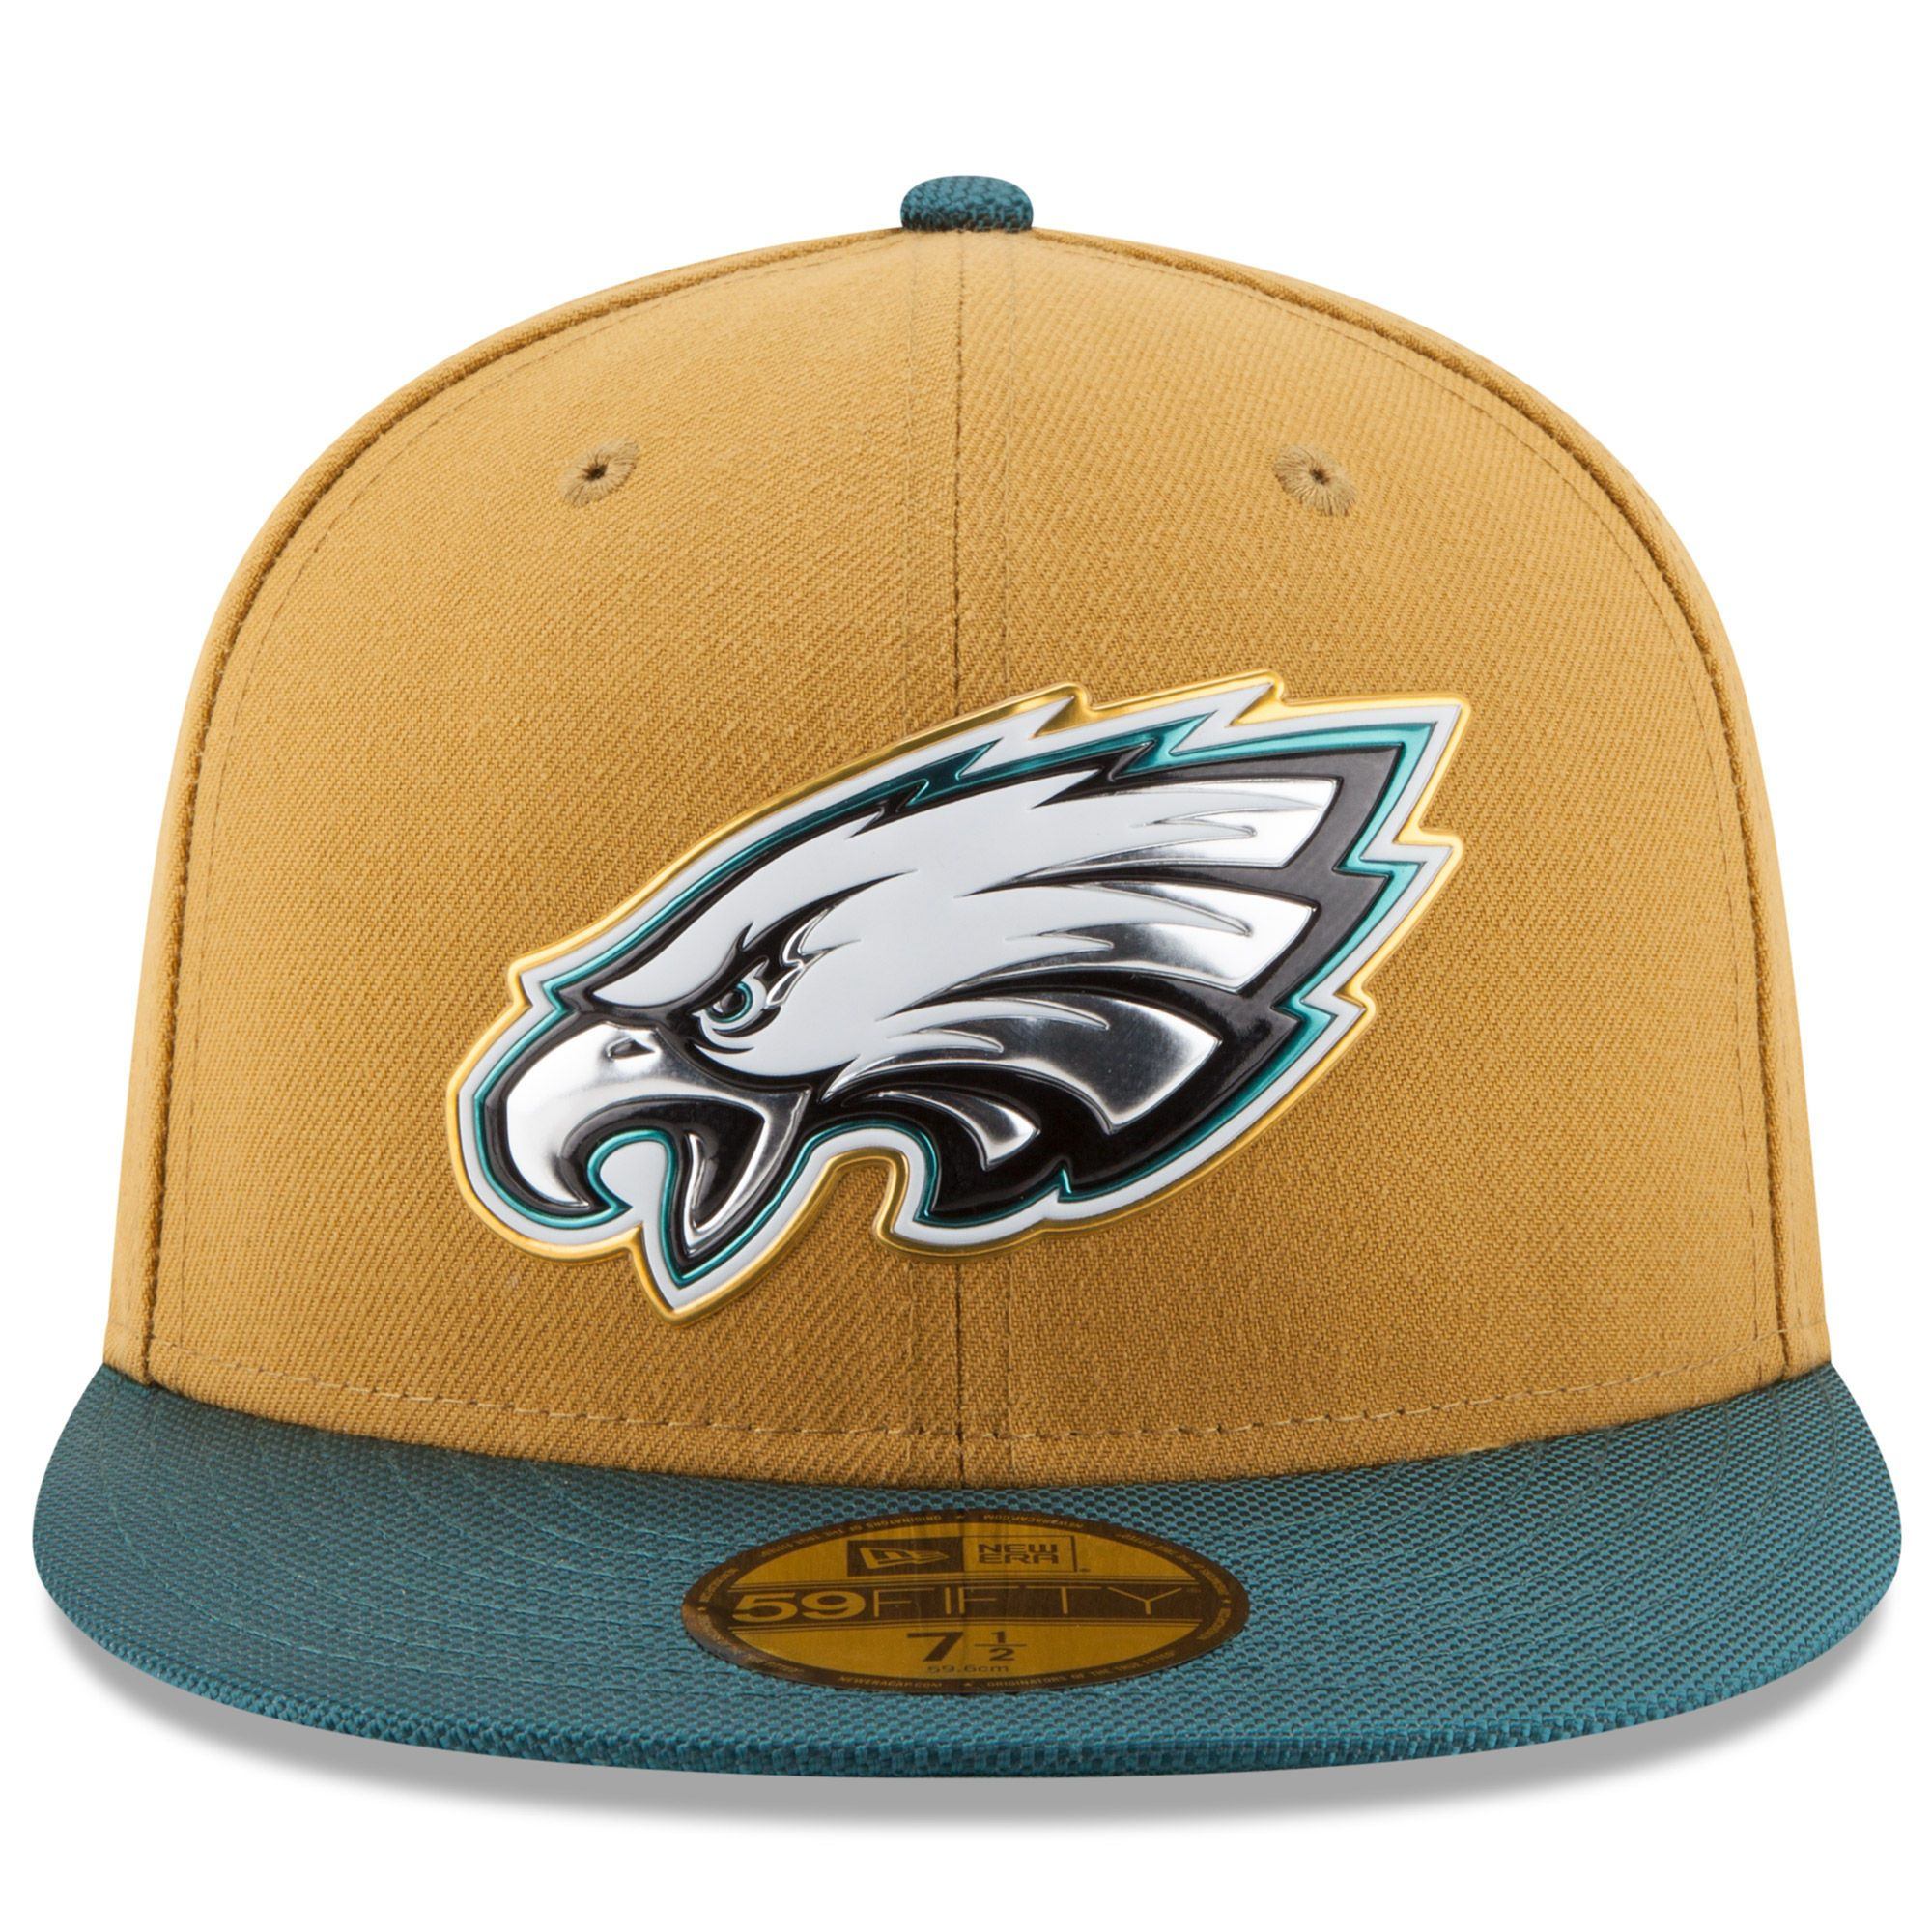 4a450ca4bbc Men s Philadelphia Eagles New Era Gold Collection 59FIFTY Fitted Hat - Gold